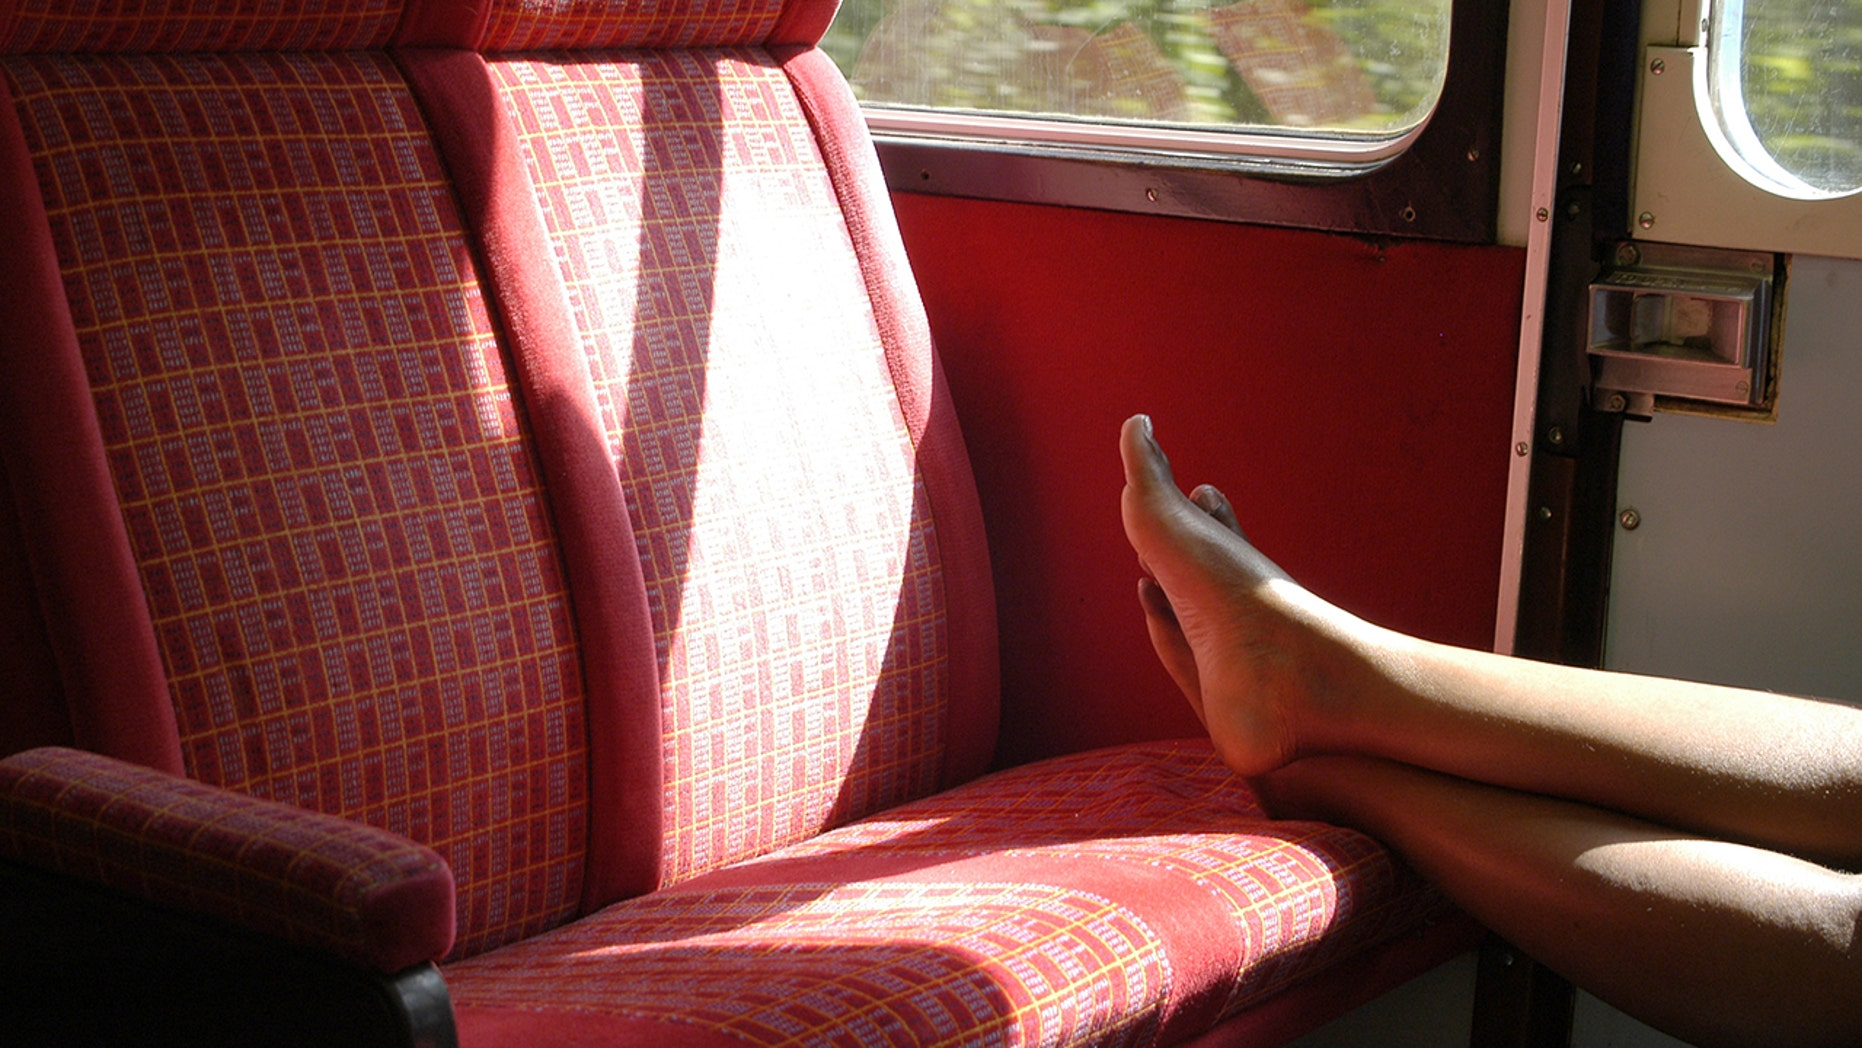 A London sportscaster called out a train passenger on Wednesday for putting their bare feet on empty seat. (Photo: iStock)